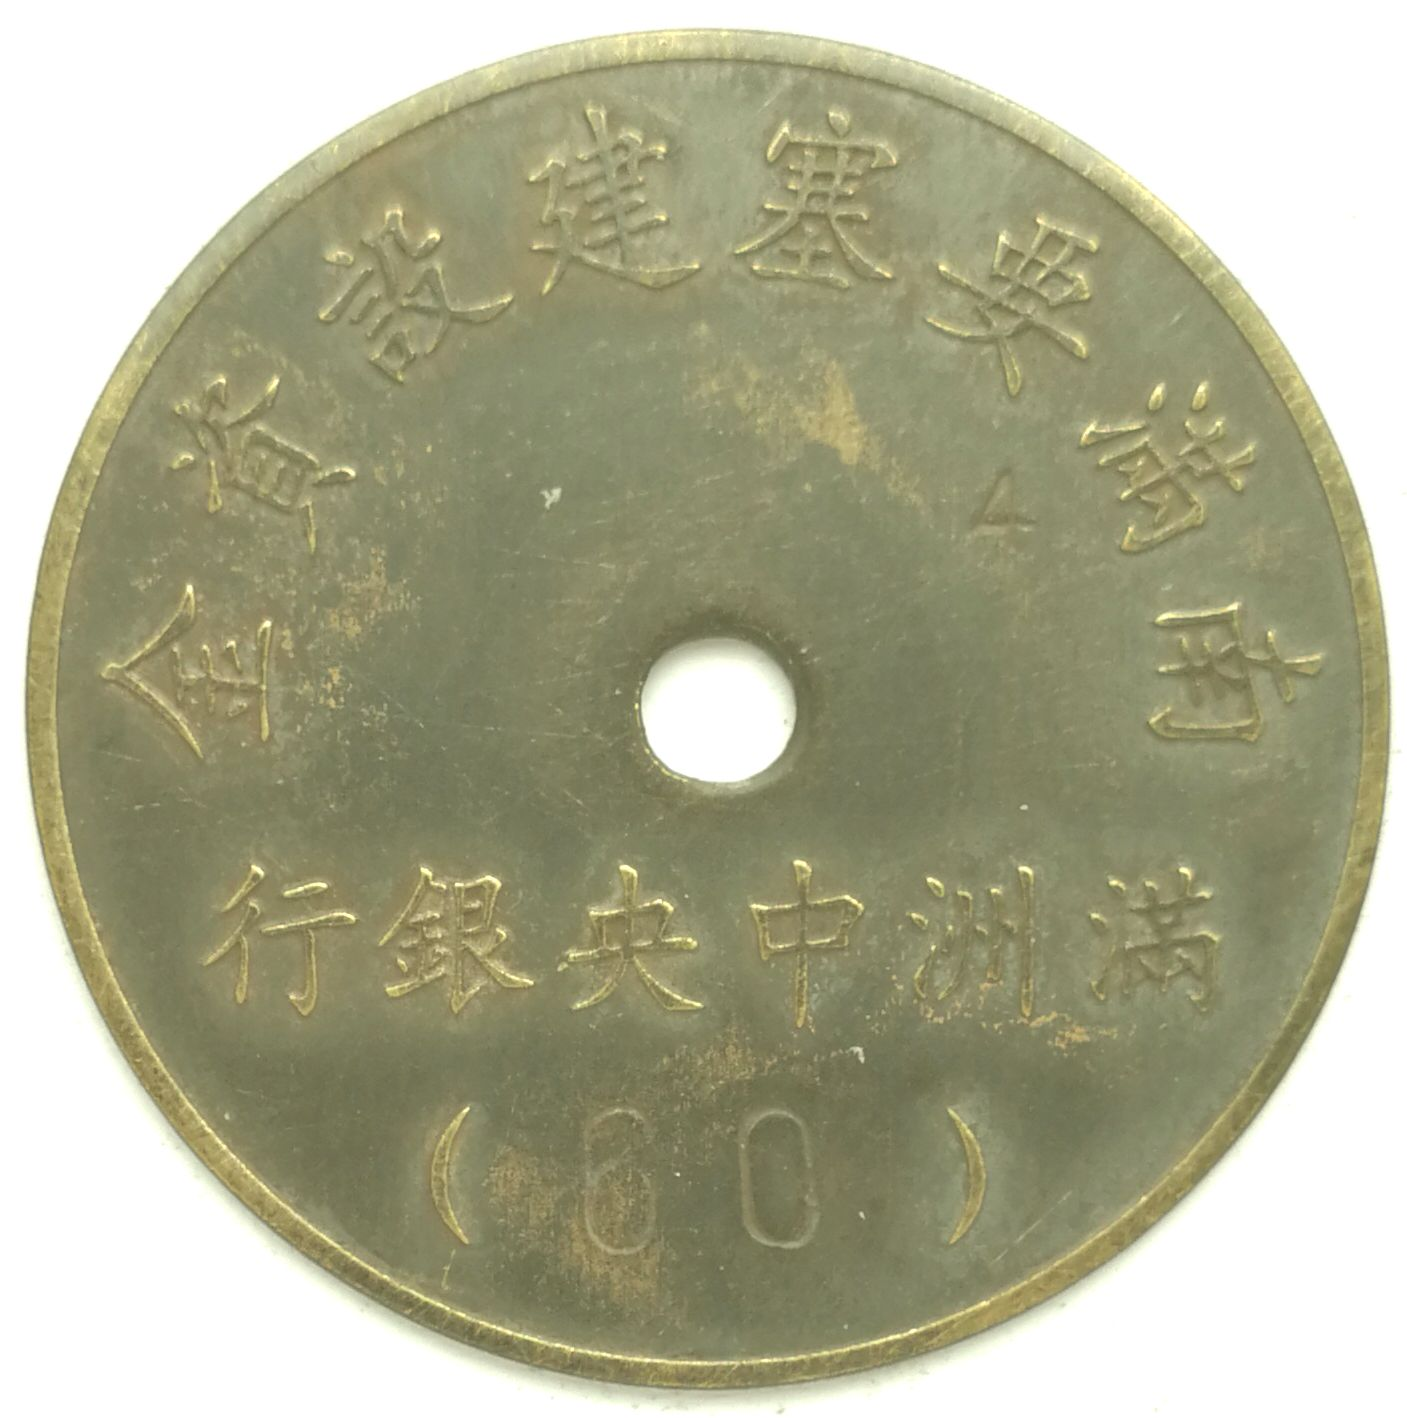 BT545, South Manchukuo Fortresses Construction Fund, 60 Yen Token, 1944